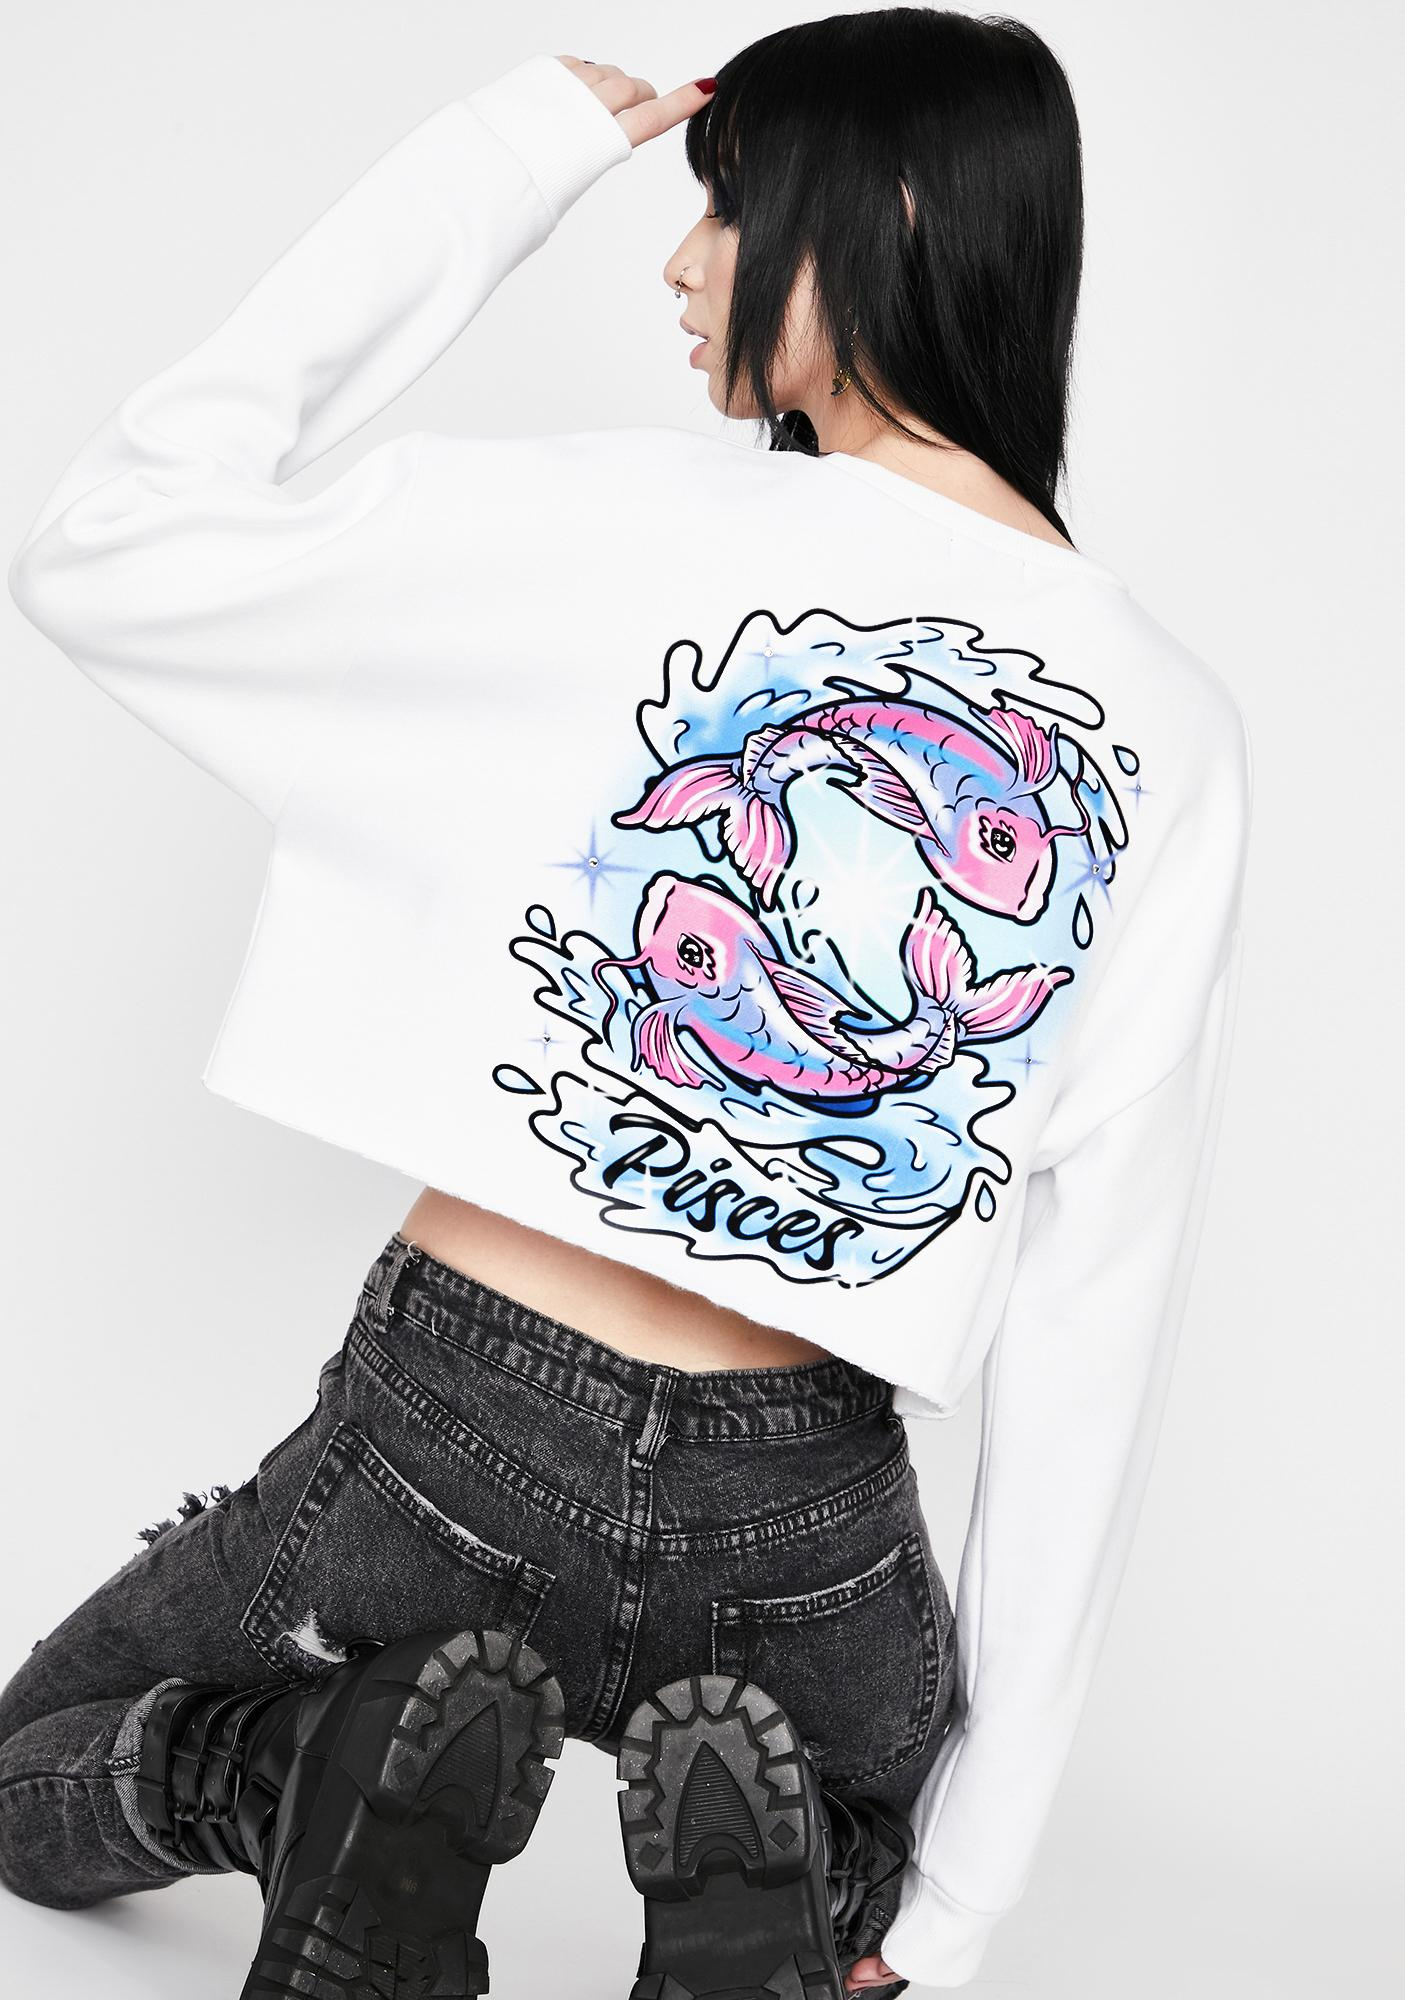 HOROSCOPEZ Pisces Rep Your Roots Airbrush Sweatshirt